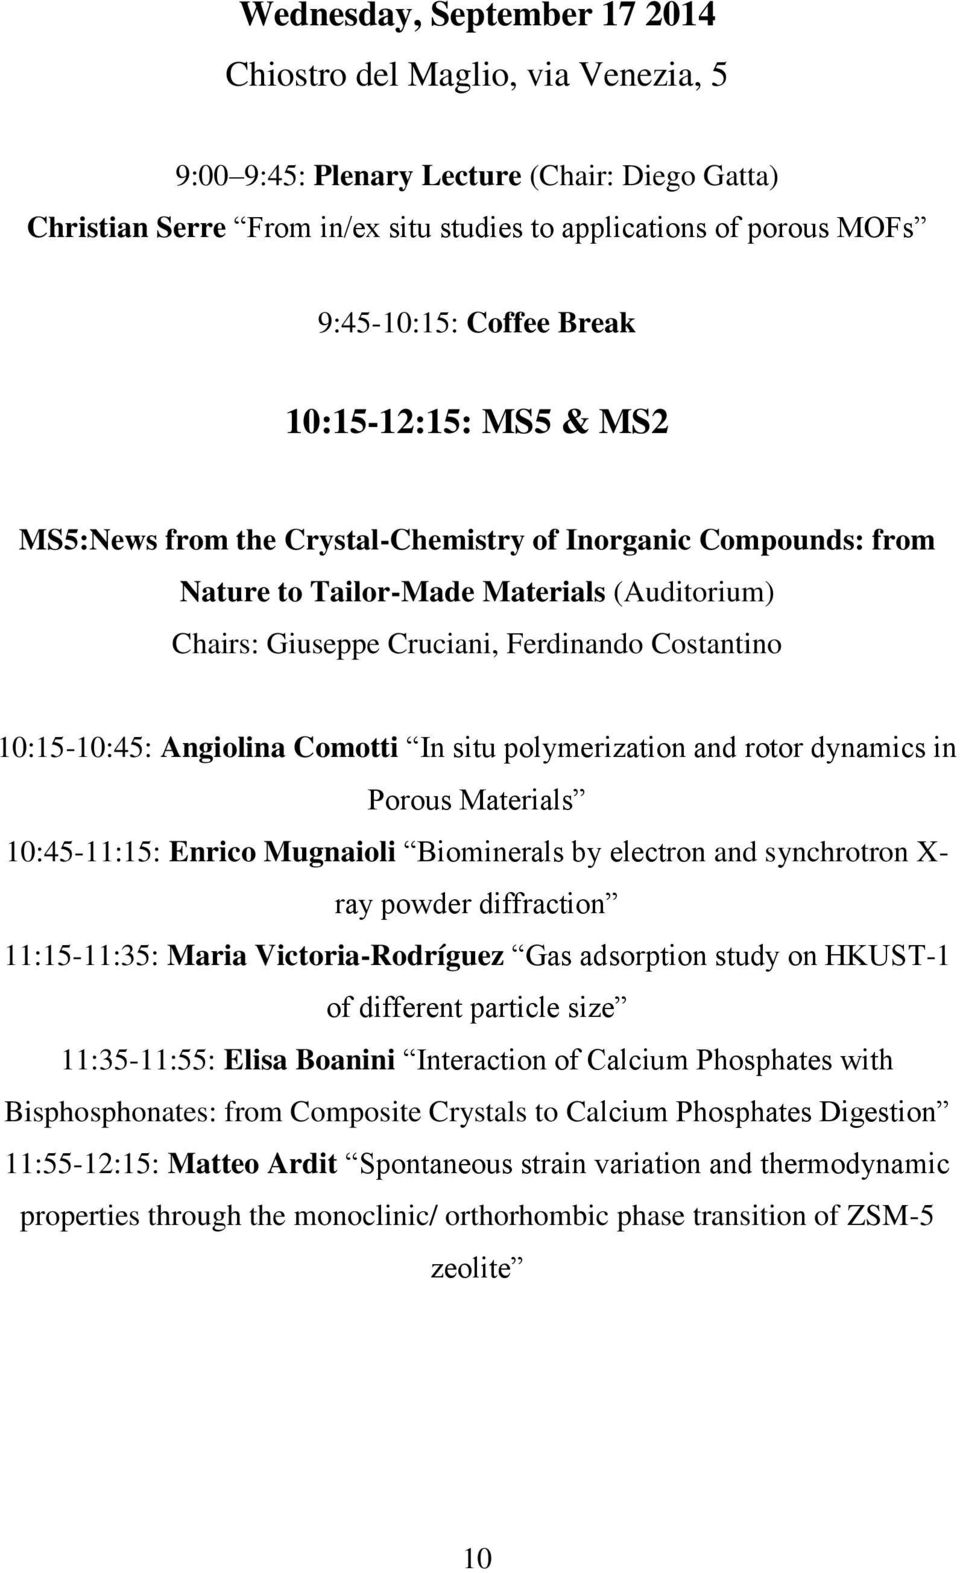 10:15-10:45: Angiolina Comotti In situ polymerization and rotor dynamics in Porous Materials 10:45-11:15: Enrico Mugnaioli Biominerals by electron and synchrotron X- ray powder diffraction